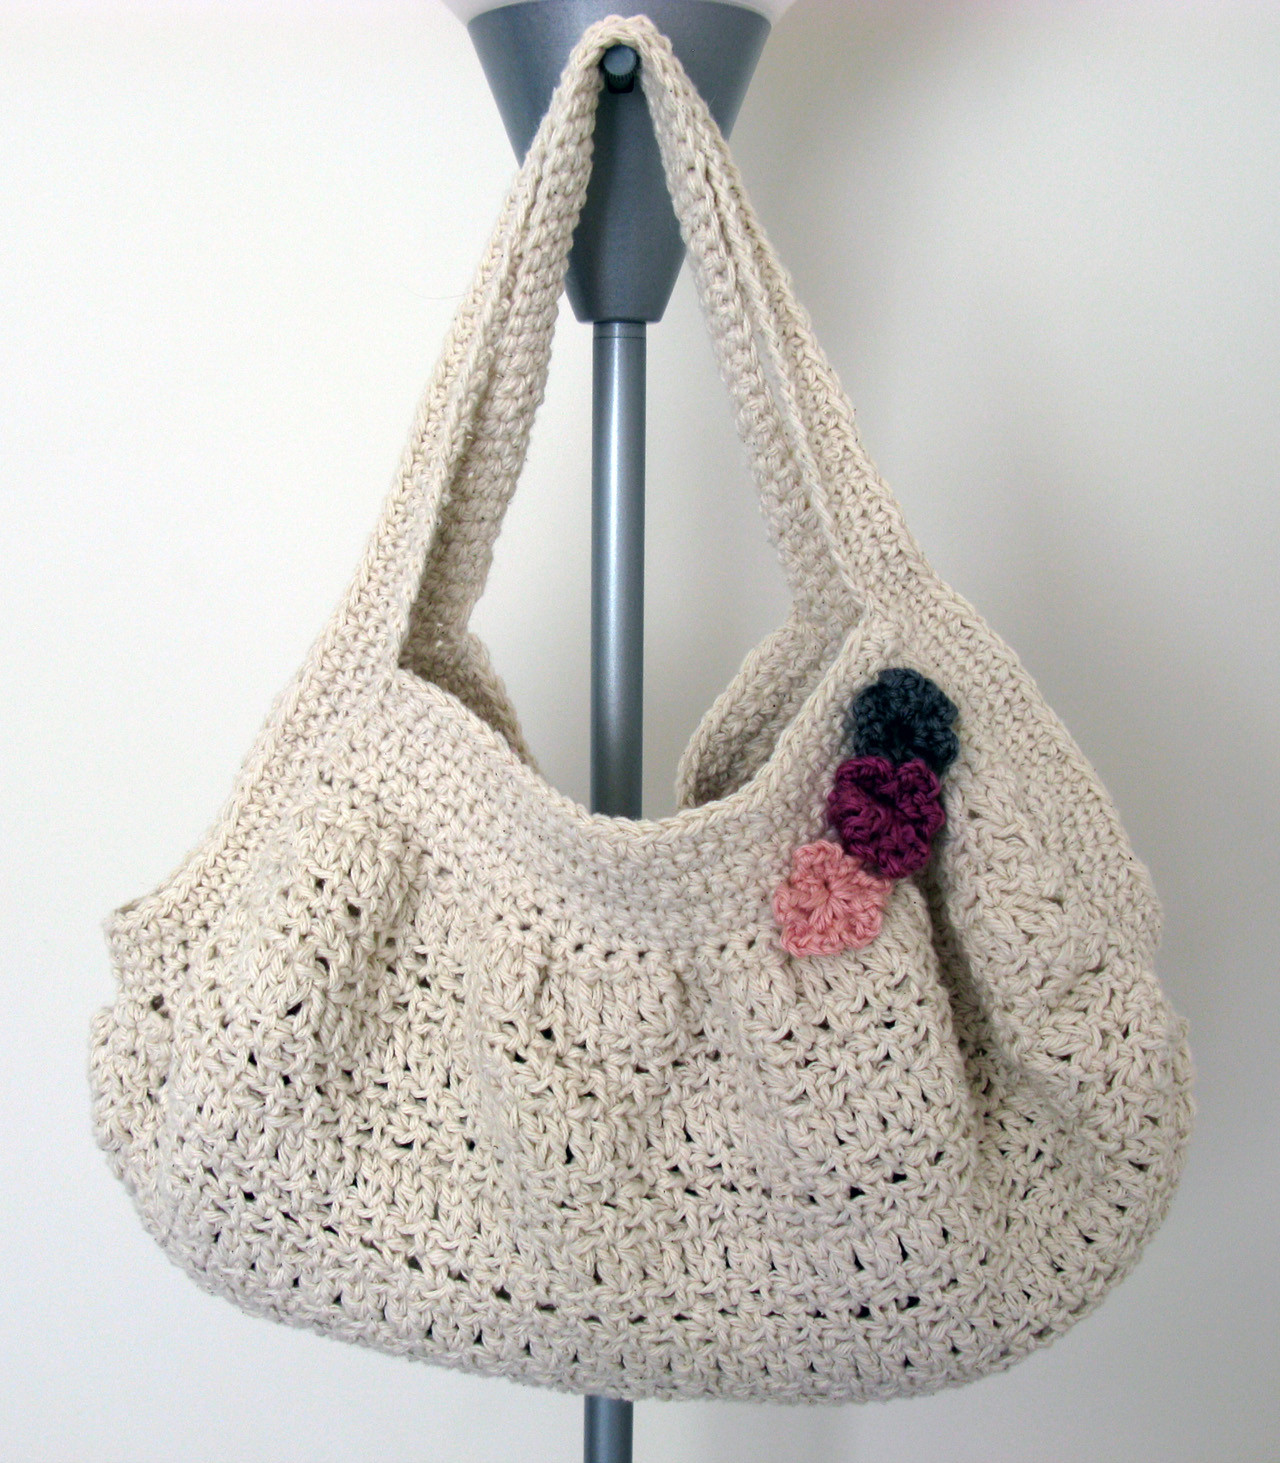 Free Crochet Bag Patterns Unique My Doll Side Japanese Style Crochet Bag Of Awesome 45 Ideas Free Crochet Bag Patterns